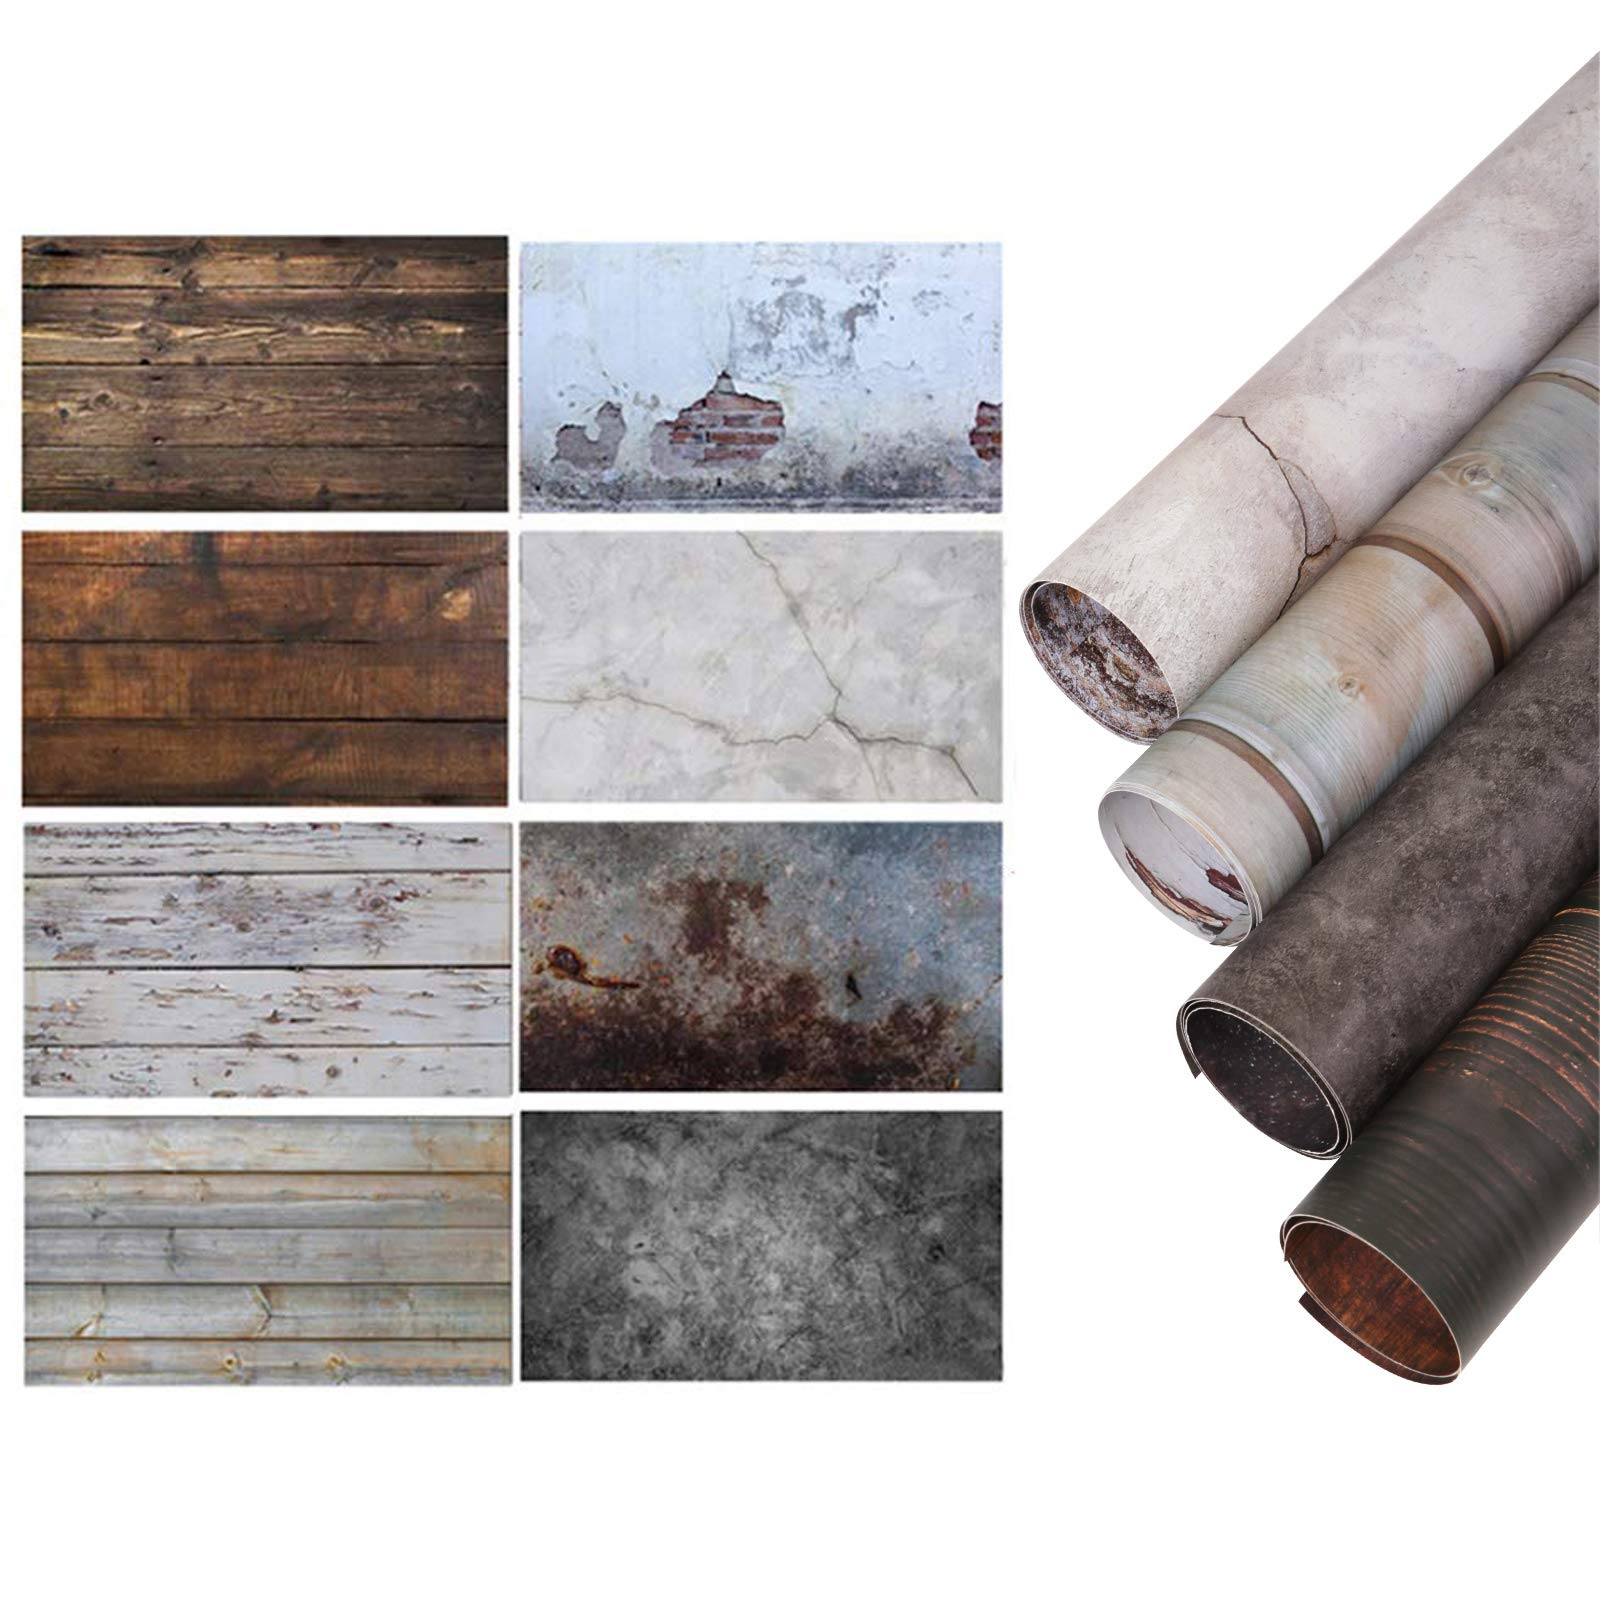 Selens 22x35Inch 2-in-1 Food Photography Wooden Background 4pcs Paper for Photographers, Foodies, Gourmet Bloggers, Cosmetic Sellers, Online Stores Product Photography, Life Photos and More by Selens (Image #1)